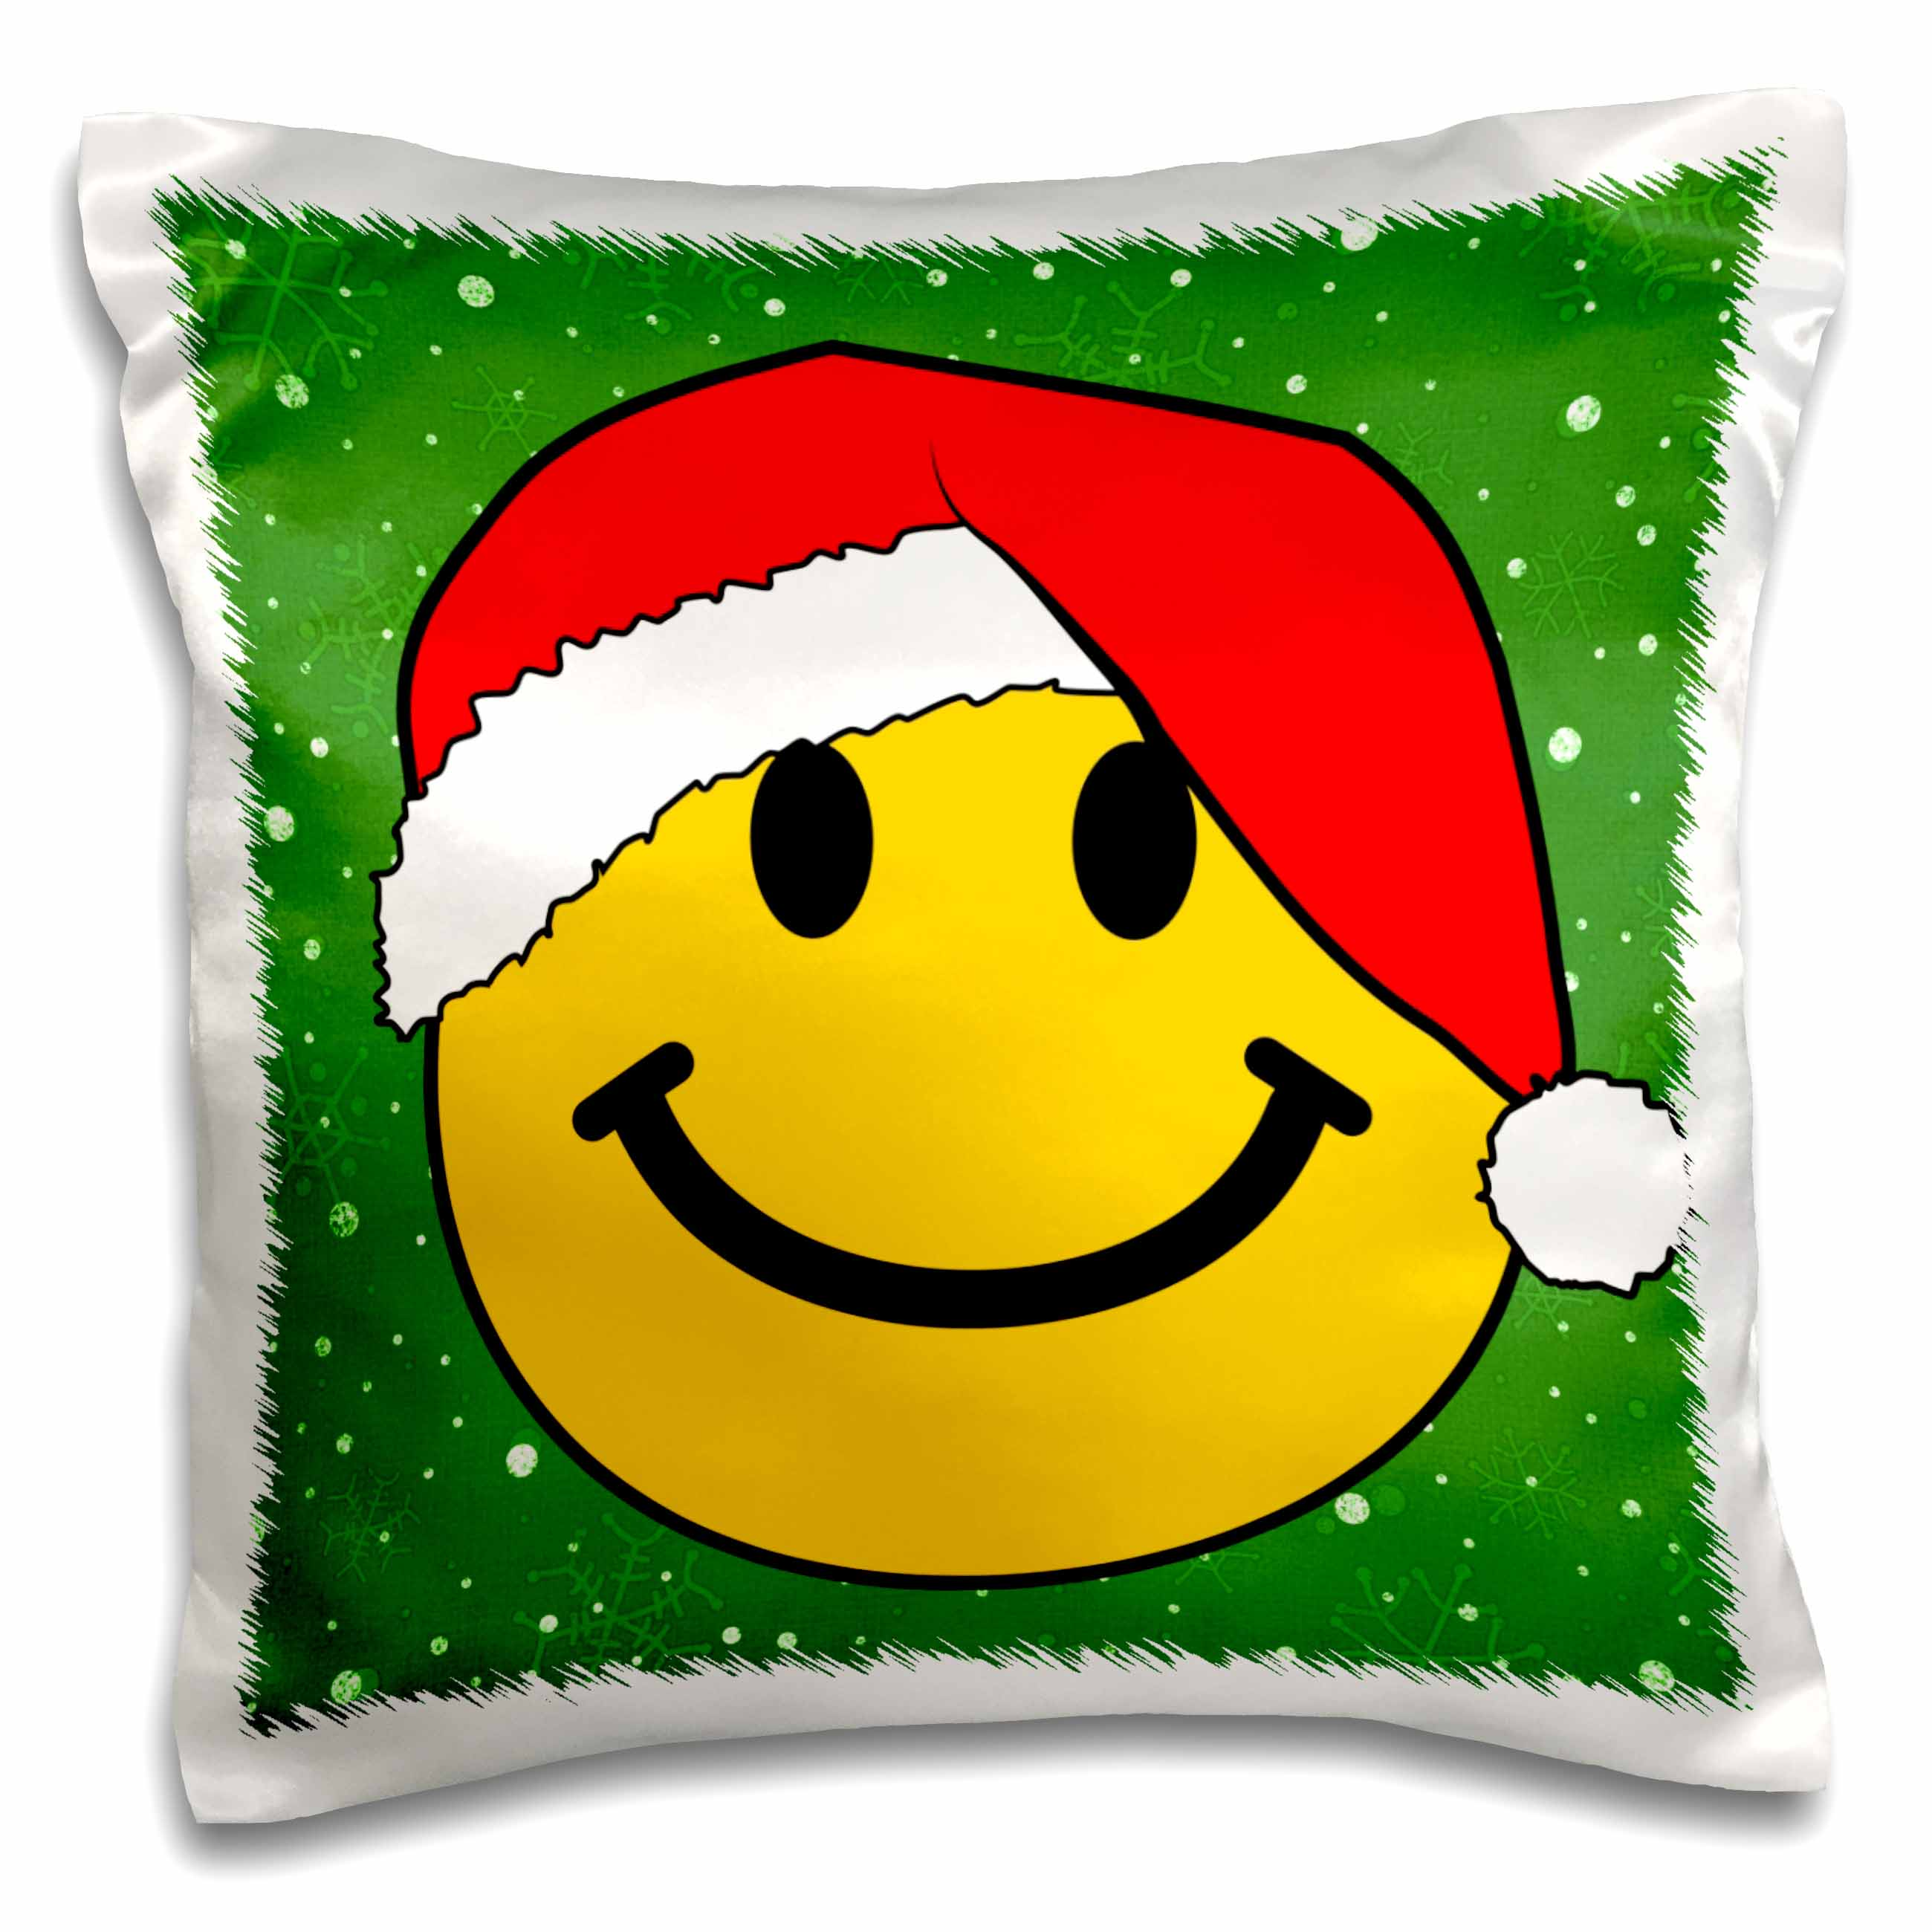 3dRose Christmas smiley face with red santa hat Happy smilie claus Green festive xmas merry jolly cartoon, Pillow Case, 16 by 16-inch